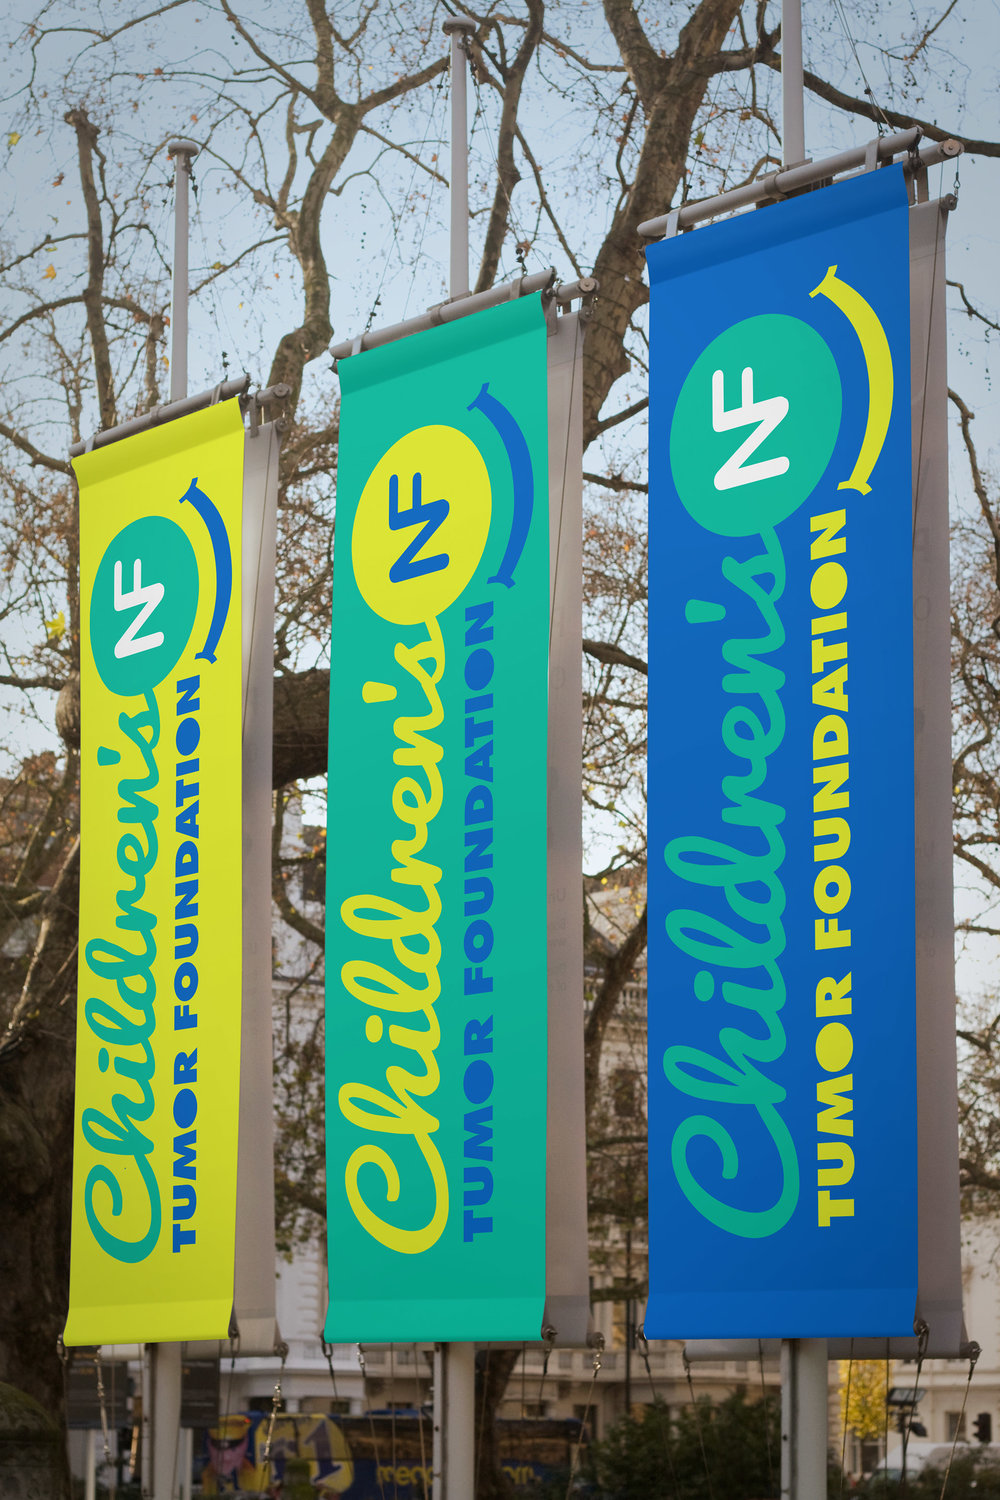 childrens-tumor-foundation-banners.jpg